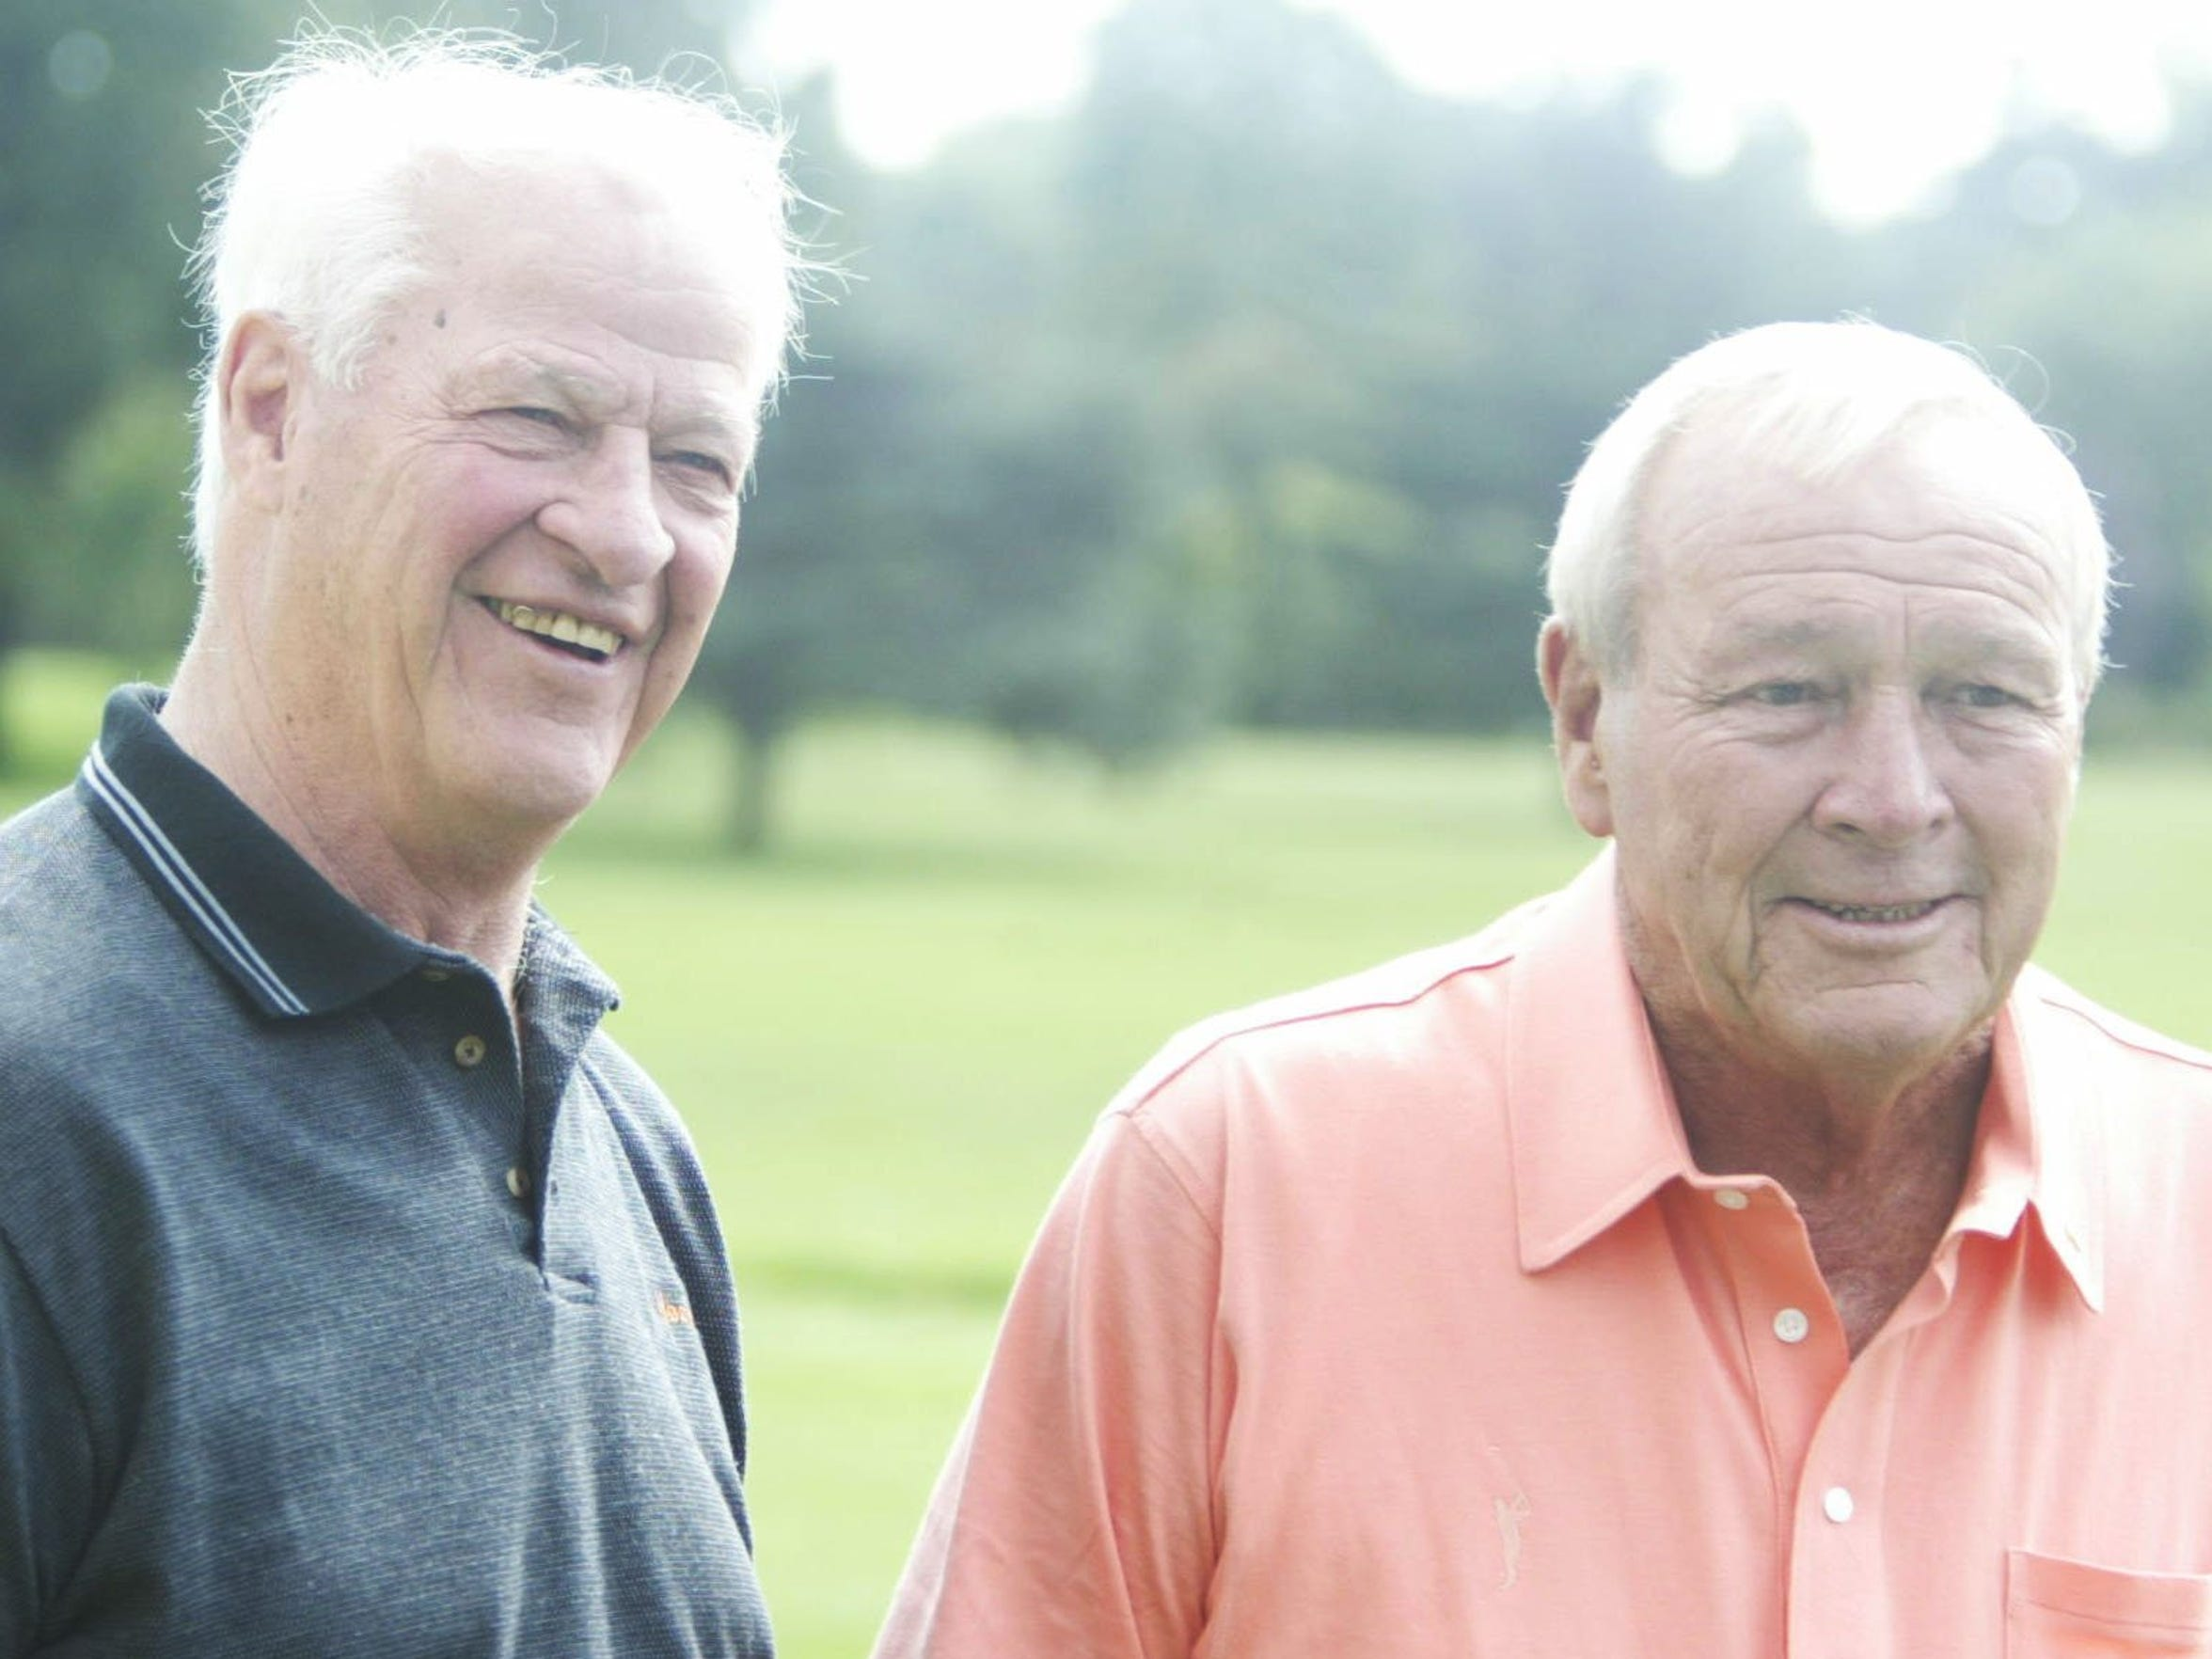 Gordie Howe, left, and golf legend Arnold Palmer at the Arnold Palmer-Turning Point Invitational at the Country Club of Detroit in Grosse Pointe on Aug. 30, 2004.